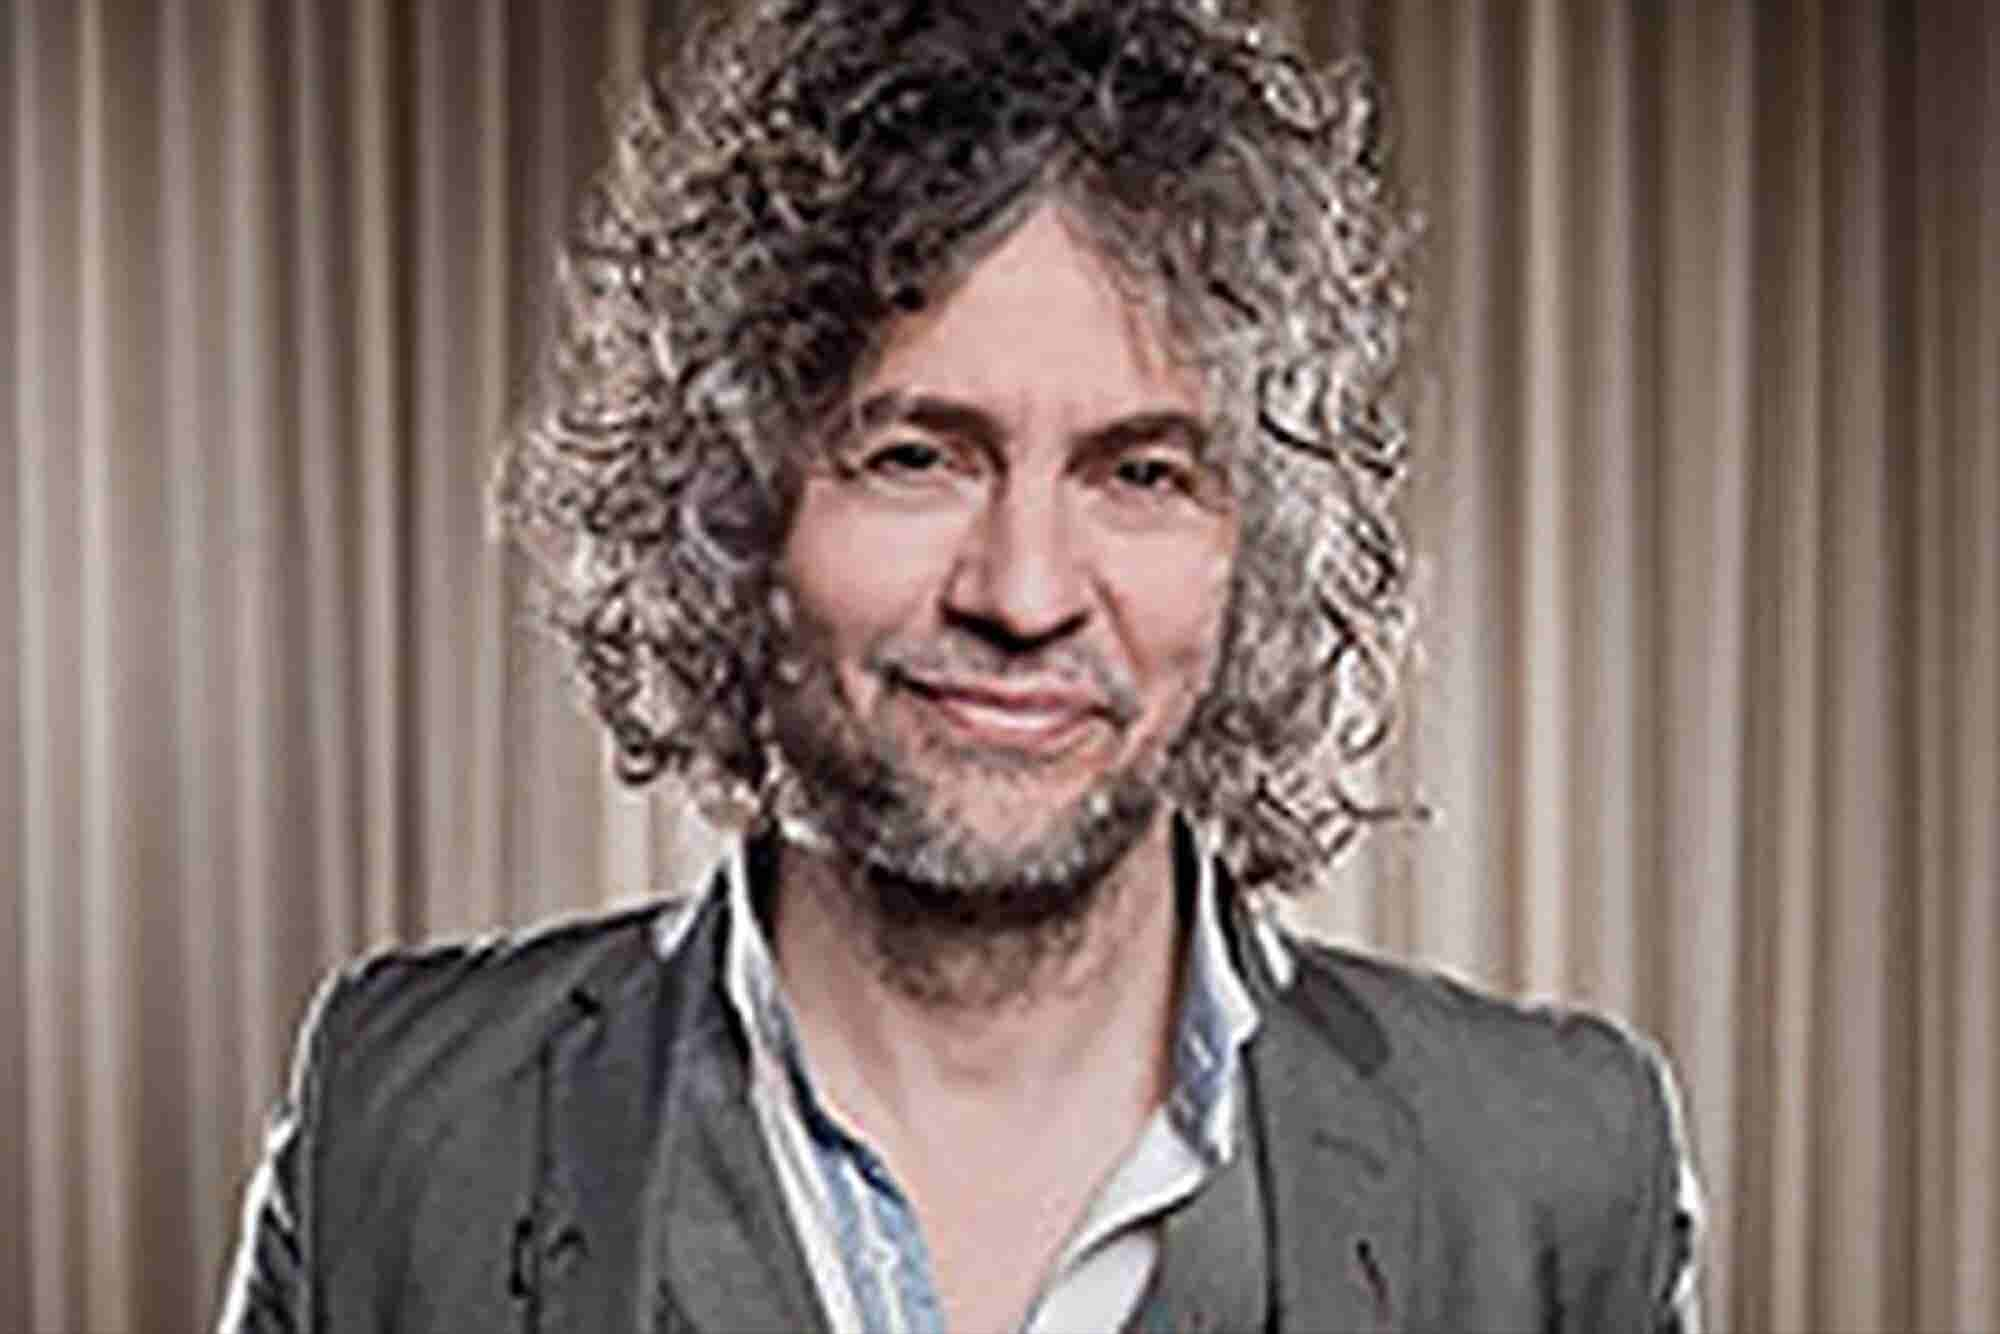 The Flaming Lips' Wayne Coyne on Reinventing the Music Industry